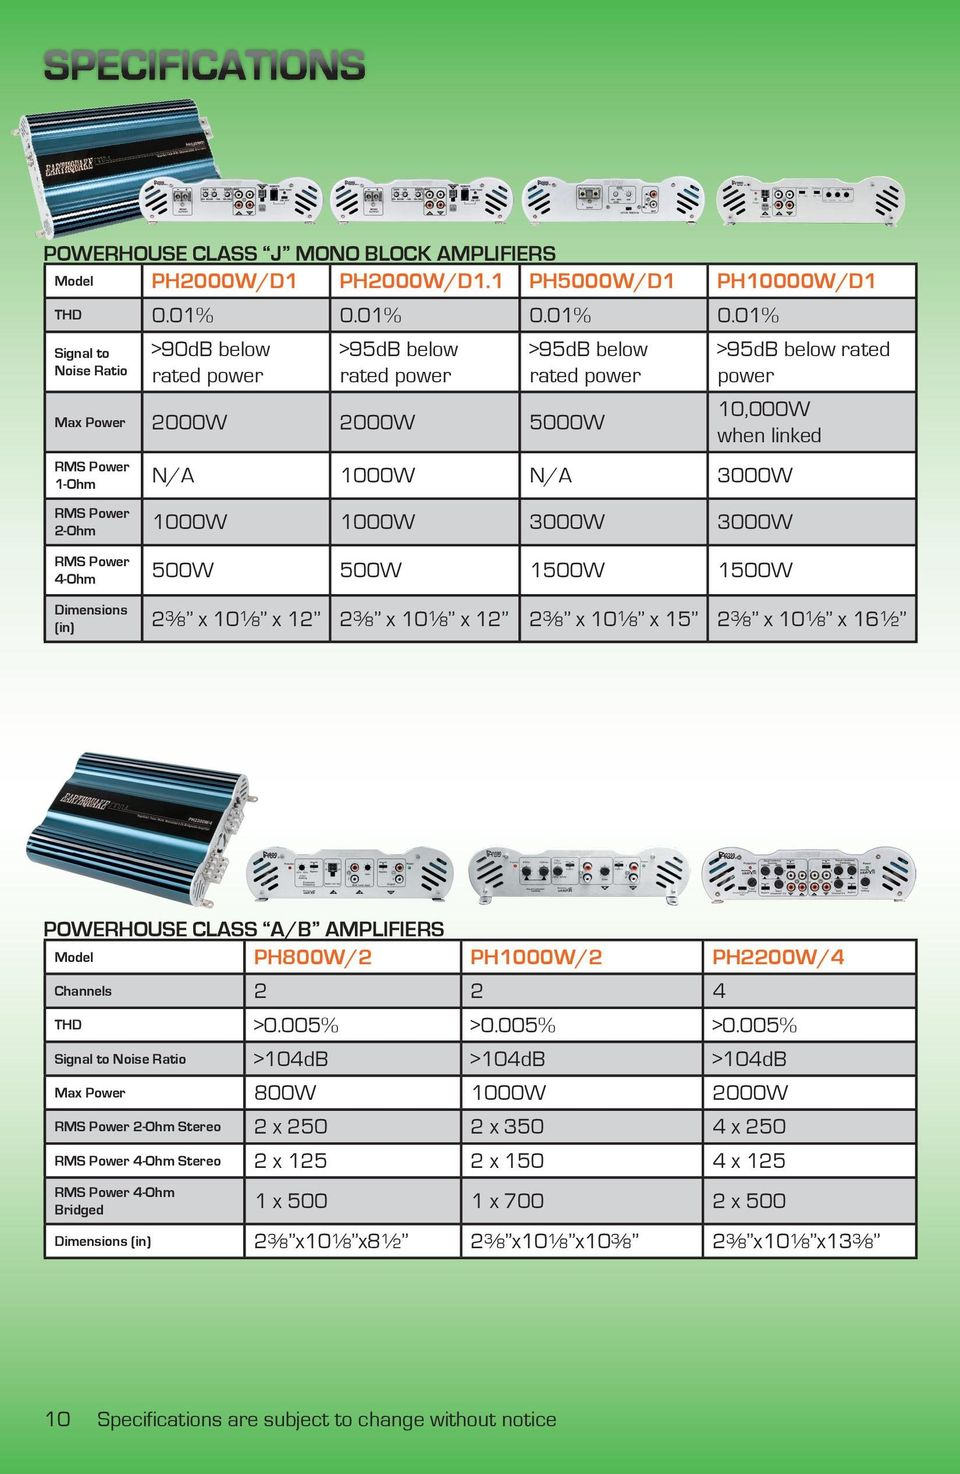 Amplifiers And Accessories Pdf 3 Channel Amp Wiring Diagram Mtx 01 Signal To Noise Ratio 90db Below Max Power 2000w 5000w Rated